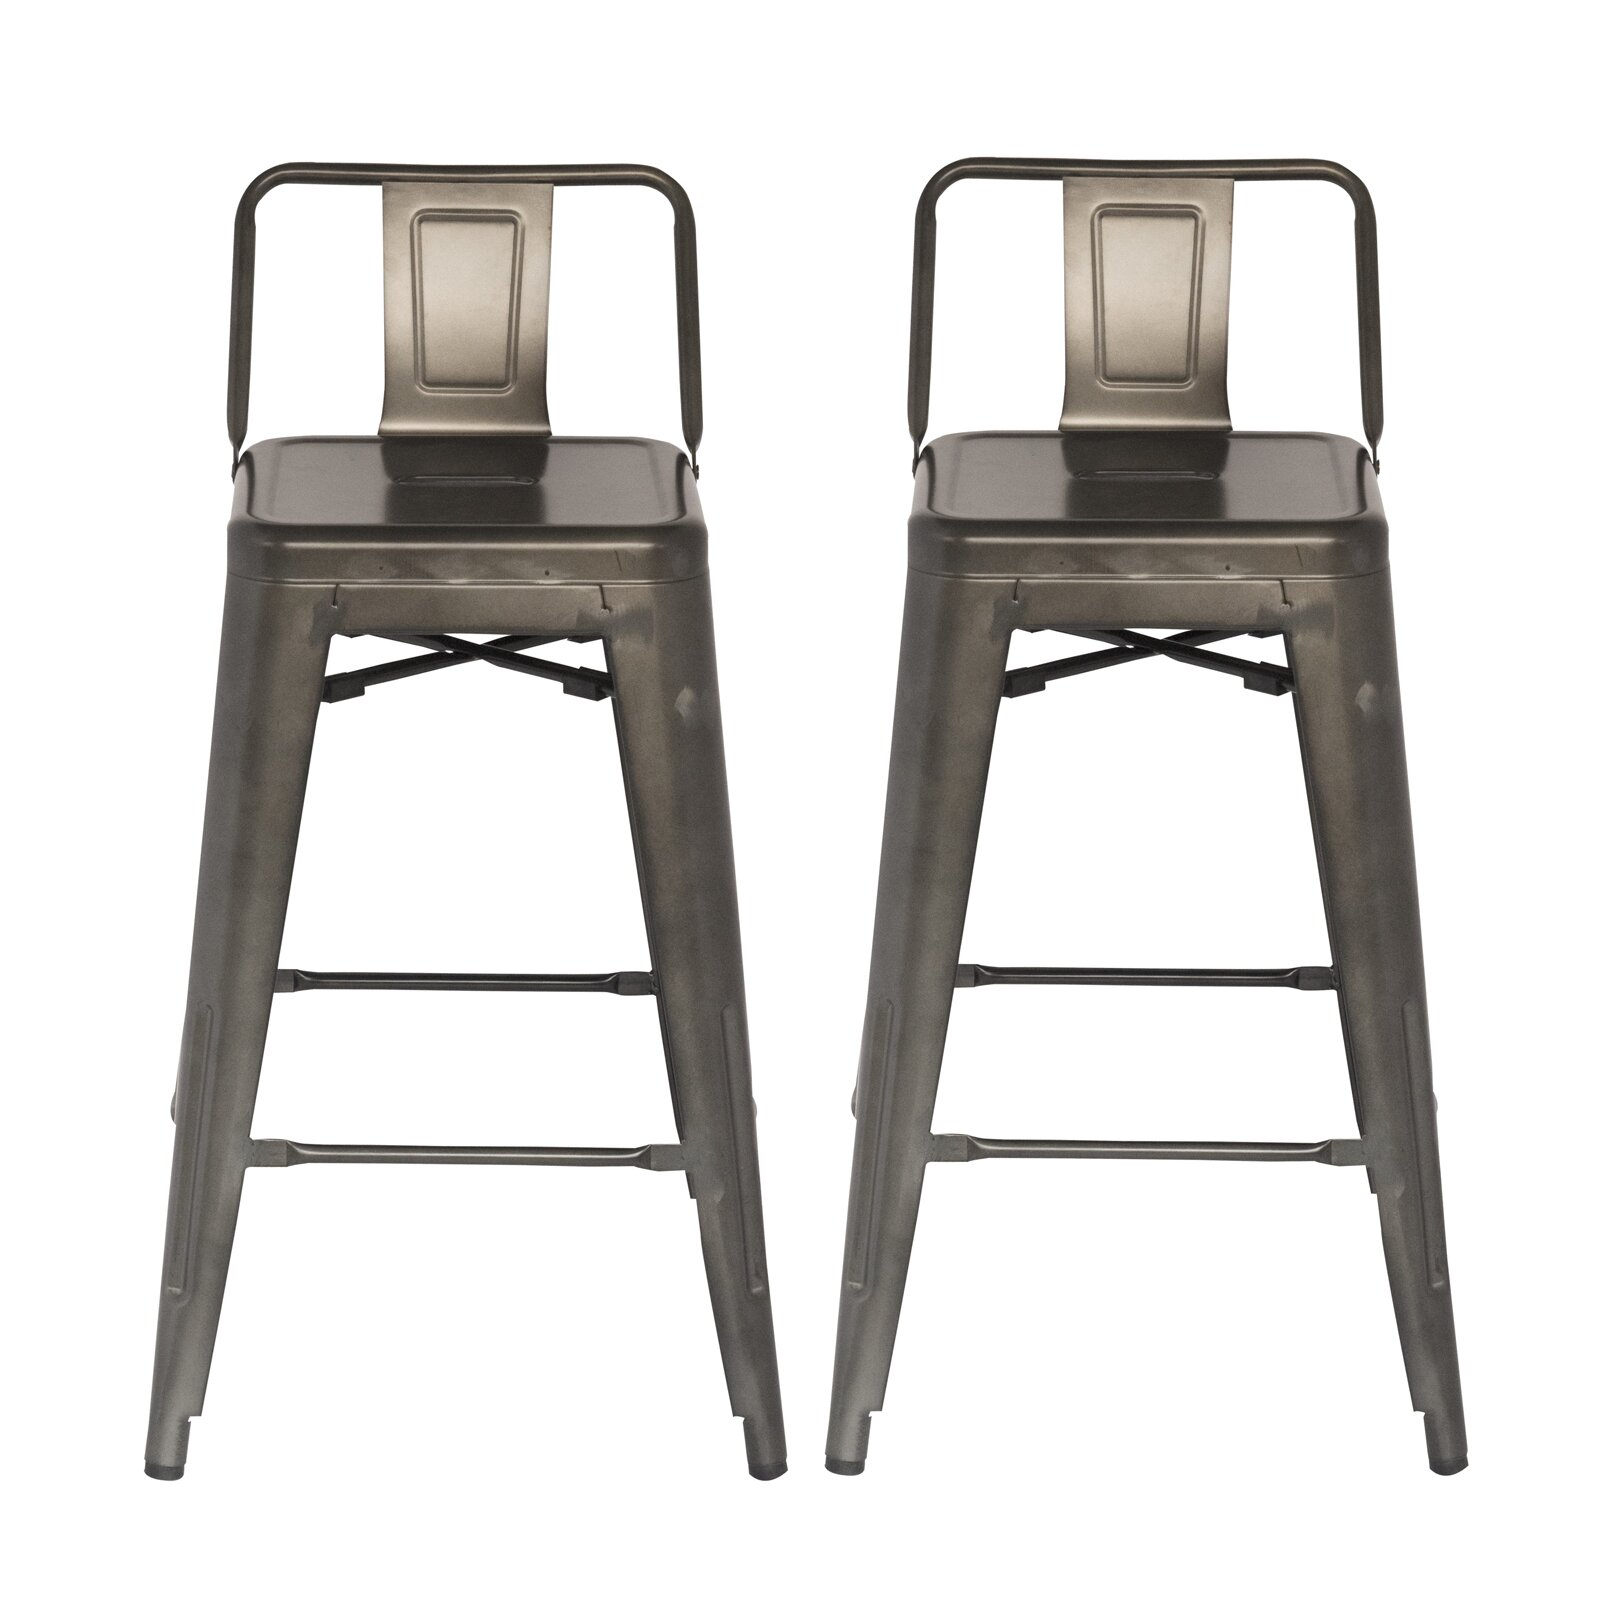 Ace casual furniture 33 bar stool reviews for Furniture 2 day shipping